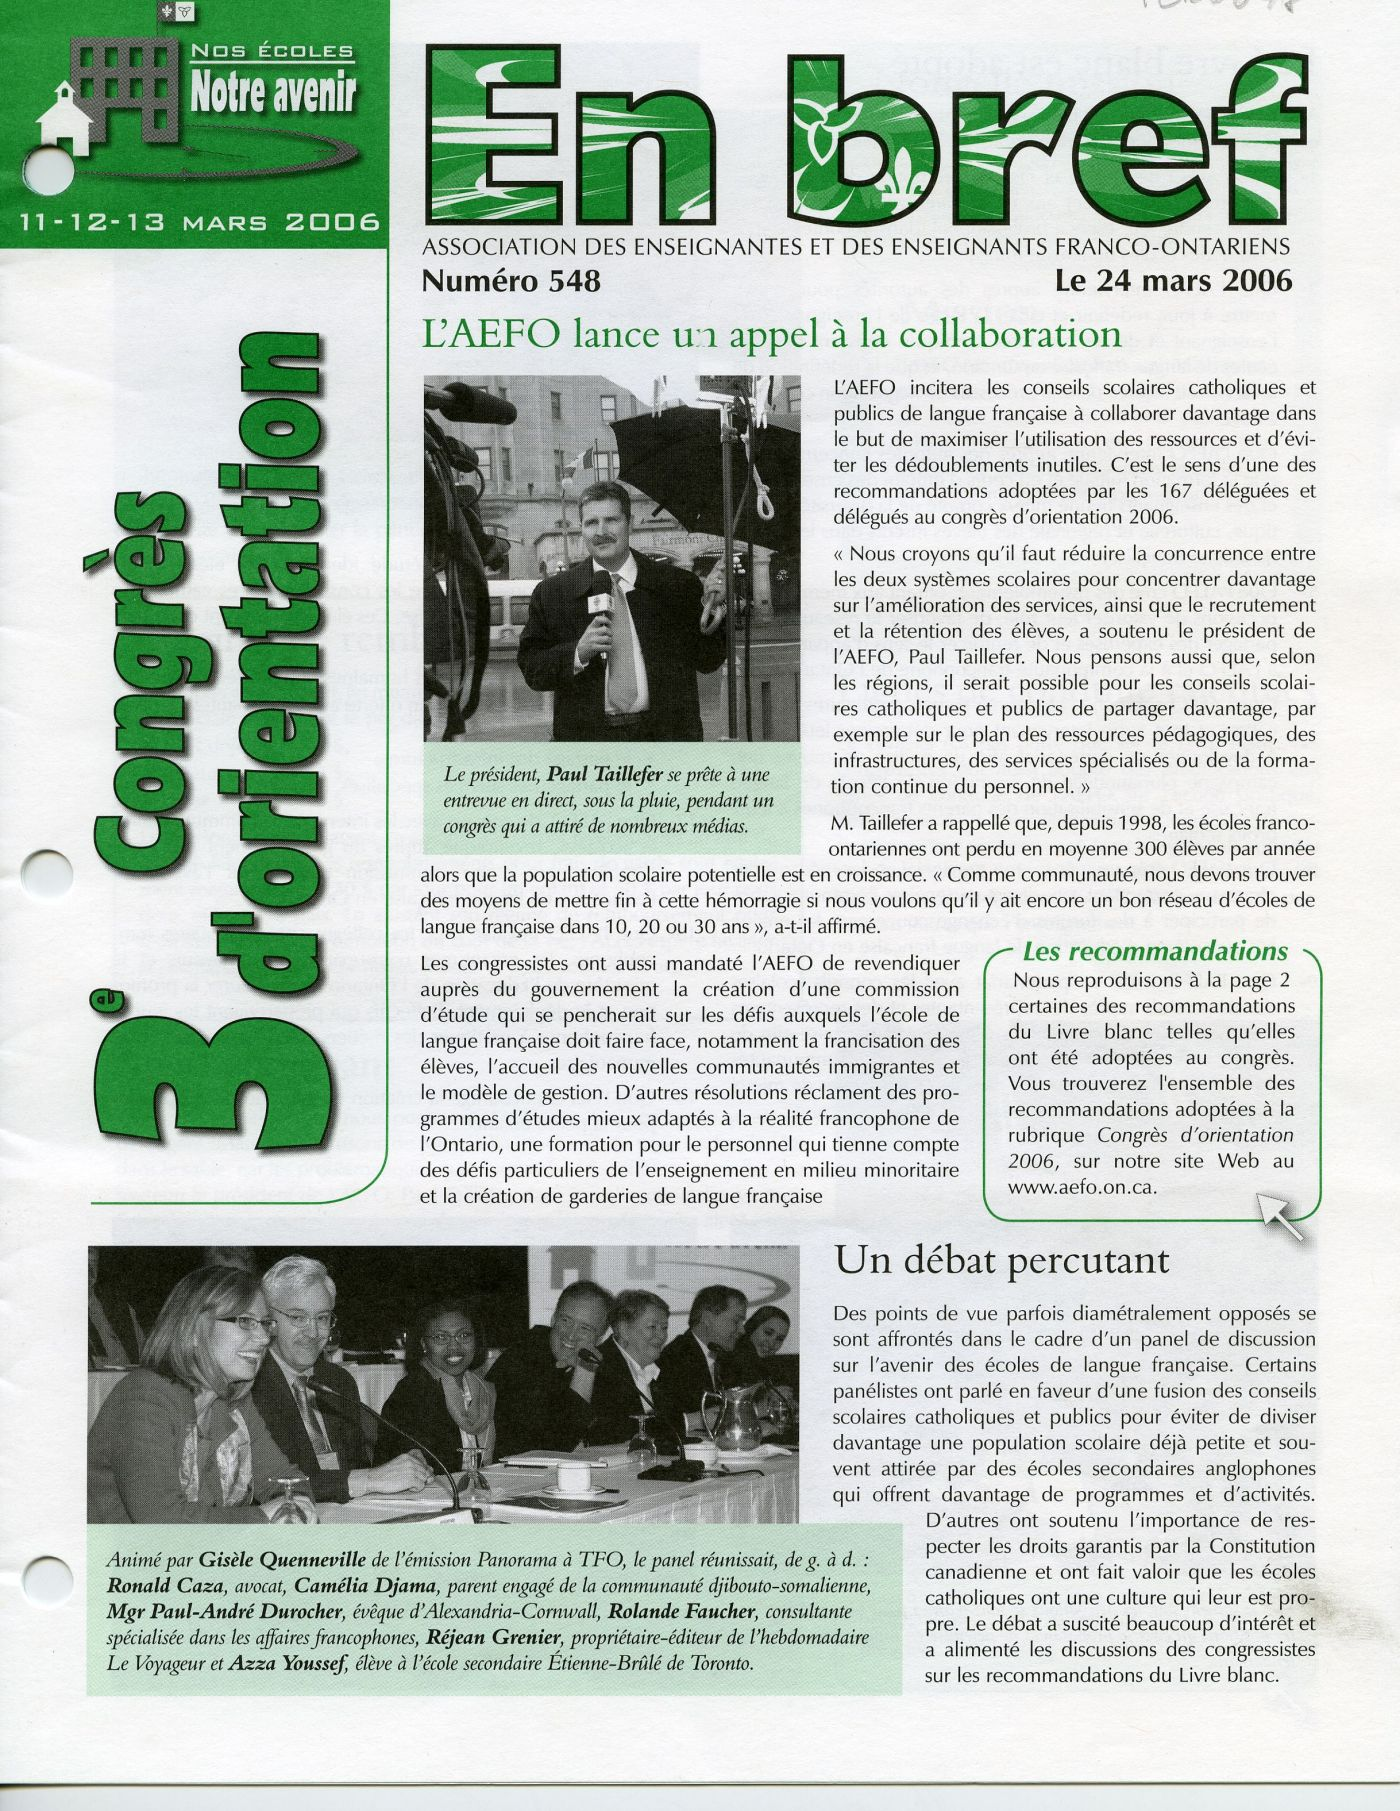 """Colour photograph of the first page of a French newsletter, including text and photos. On the left, oriented vertically in green letters, the main topic of this issue of the newsletter: the """"3e congrès d'orientation"""" (3rd orientation assembly). The layout is irregular to capture the reader's attention."""